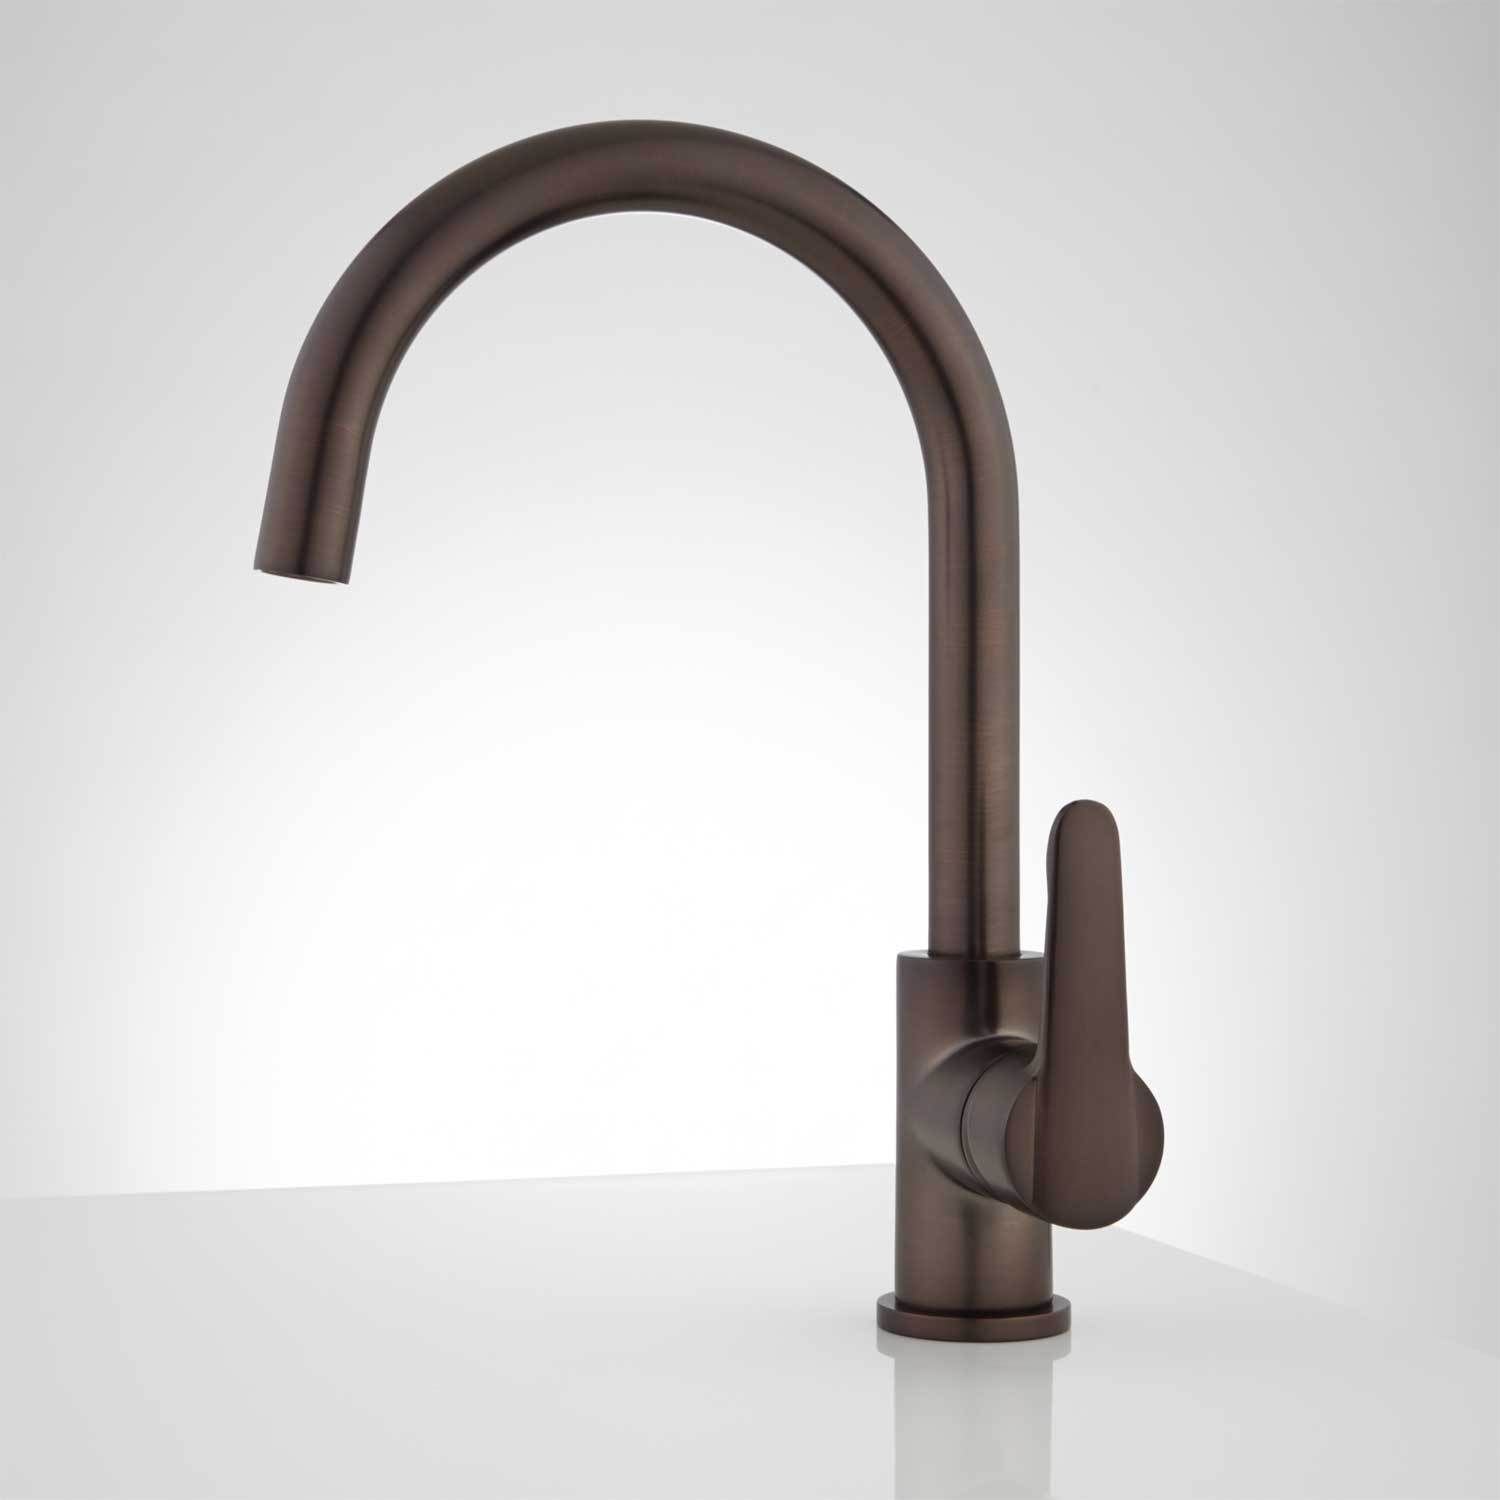 signature hardware montpellier single hole gooseneck kitchen faucet ...